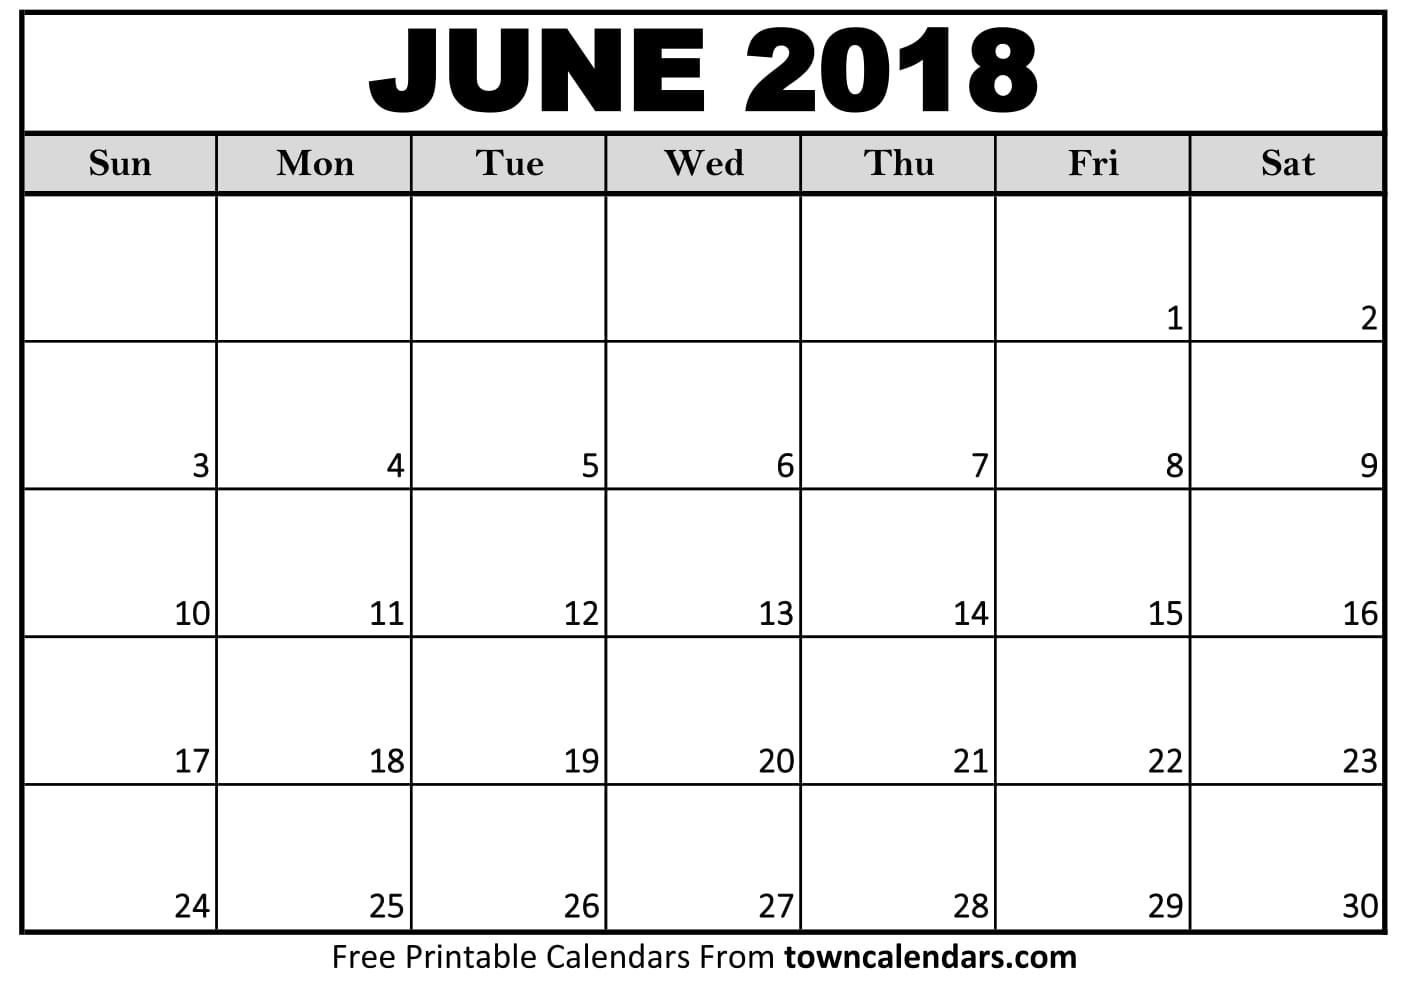 Calendar Planner June : Free june calendar printable template source